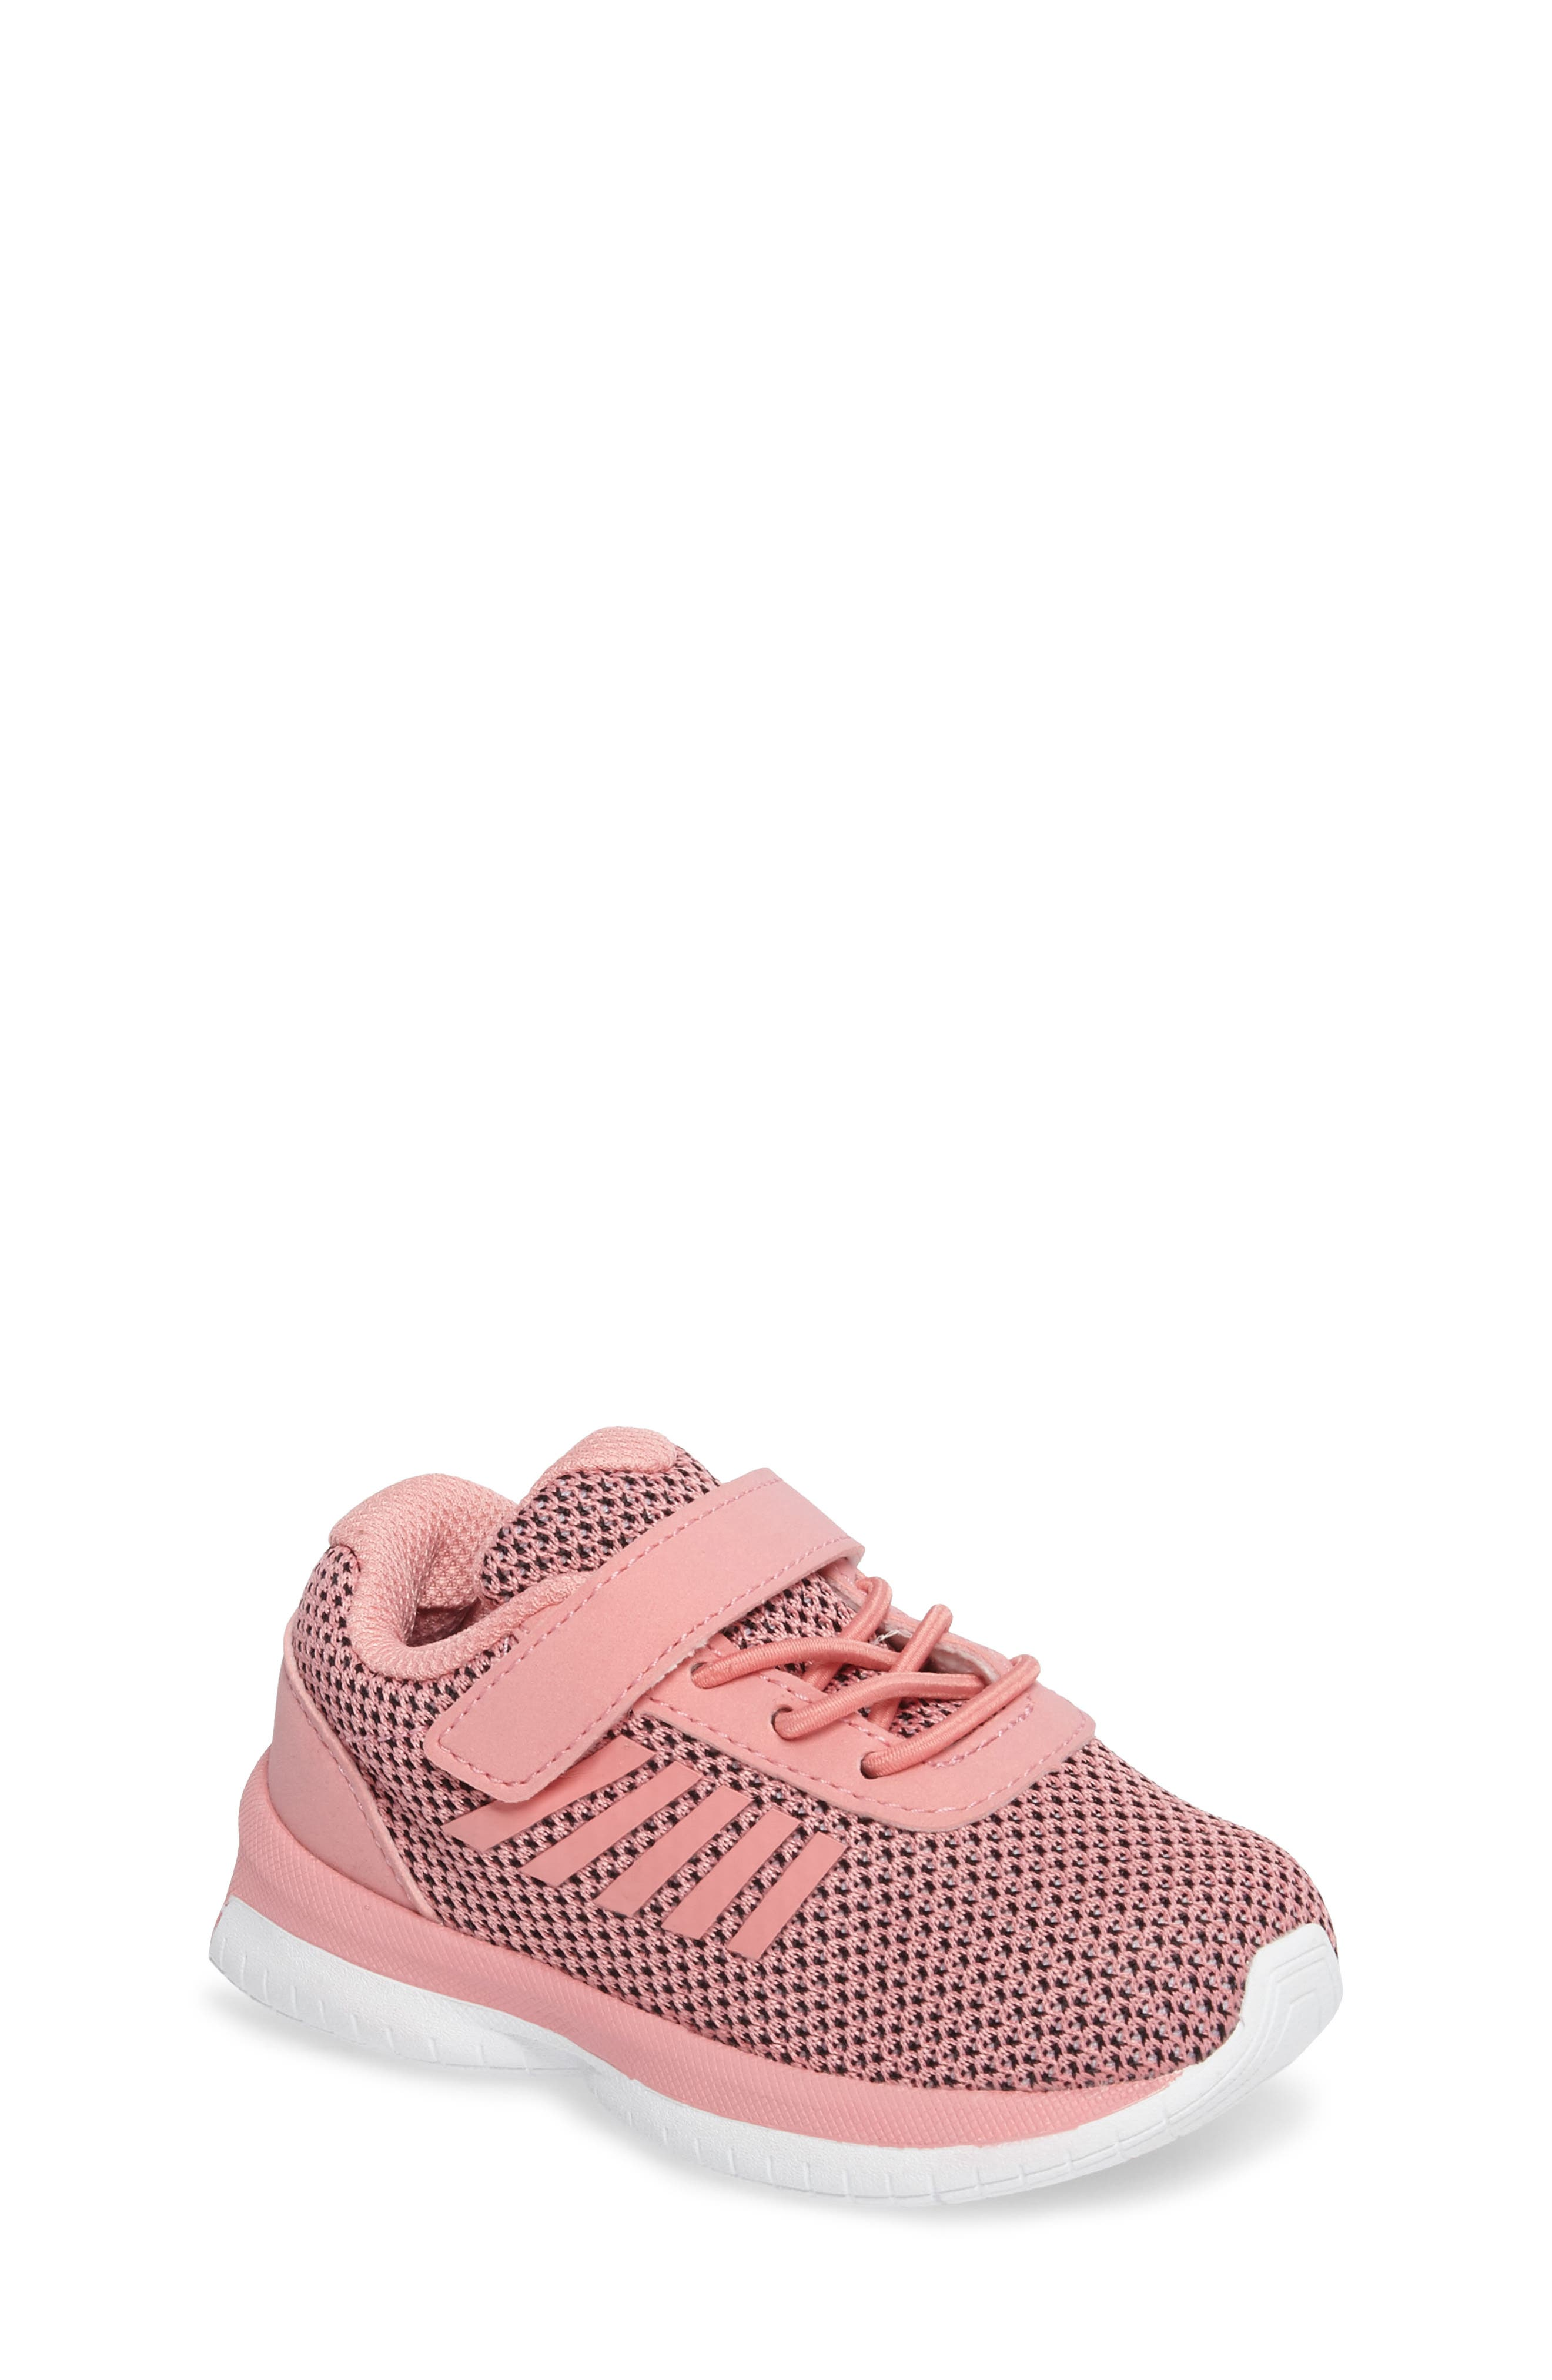 Tubes Infinity Sneaker,                         Main,                         color, Flamingo Pink/ White